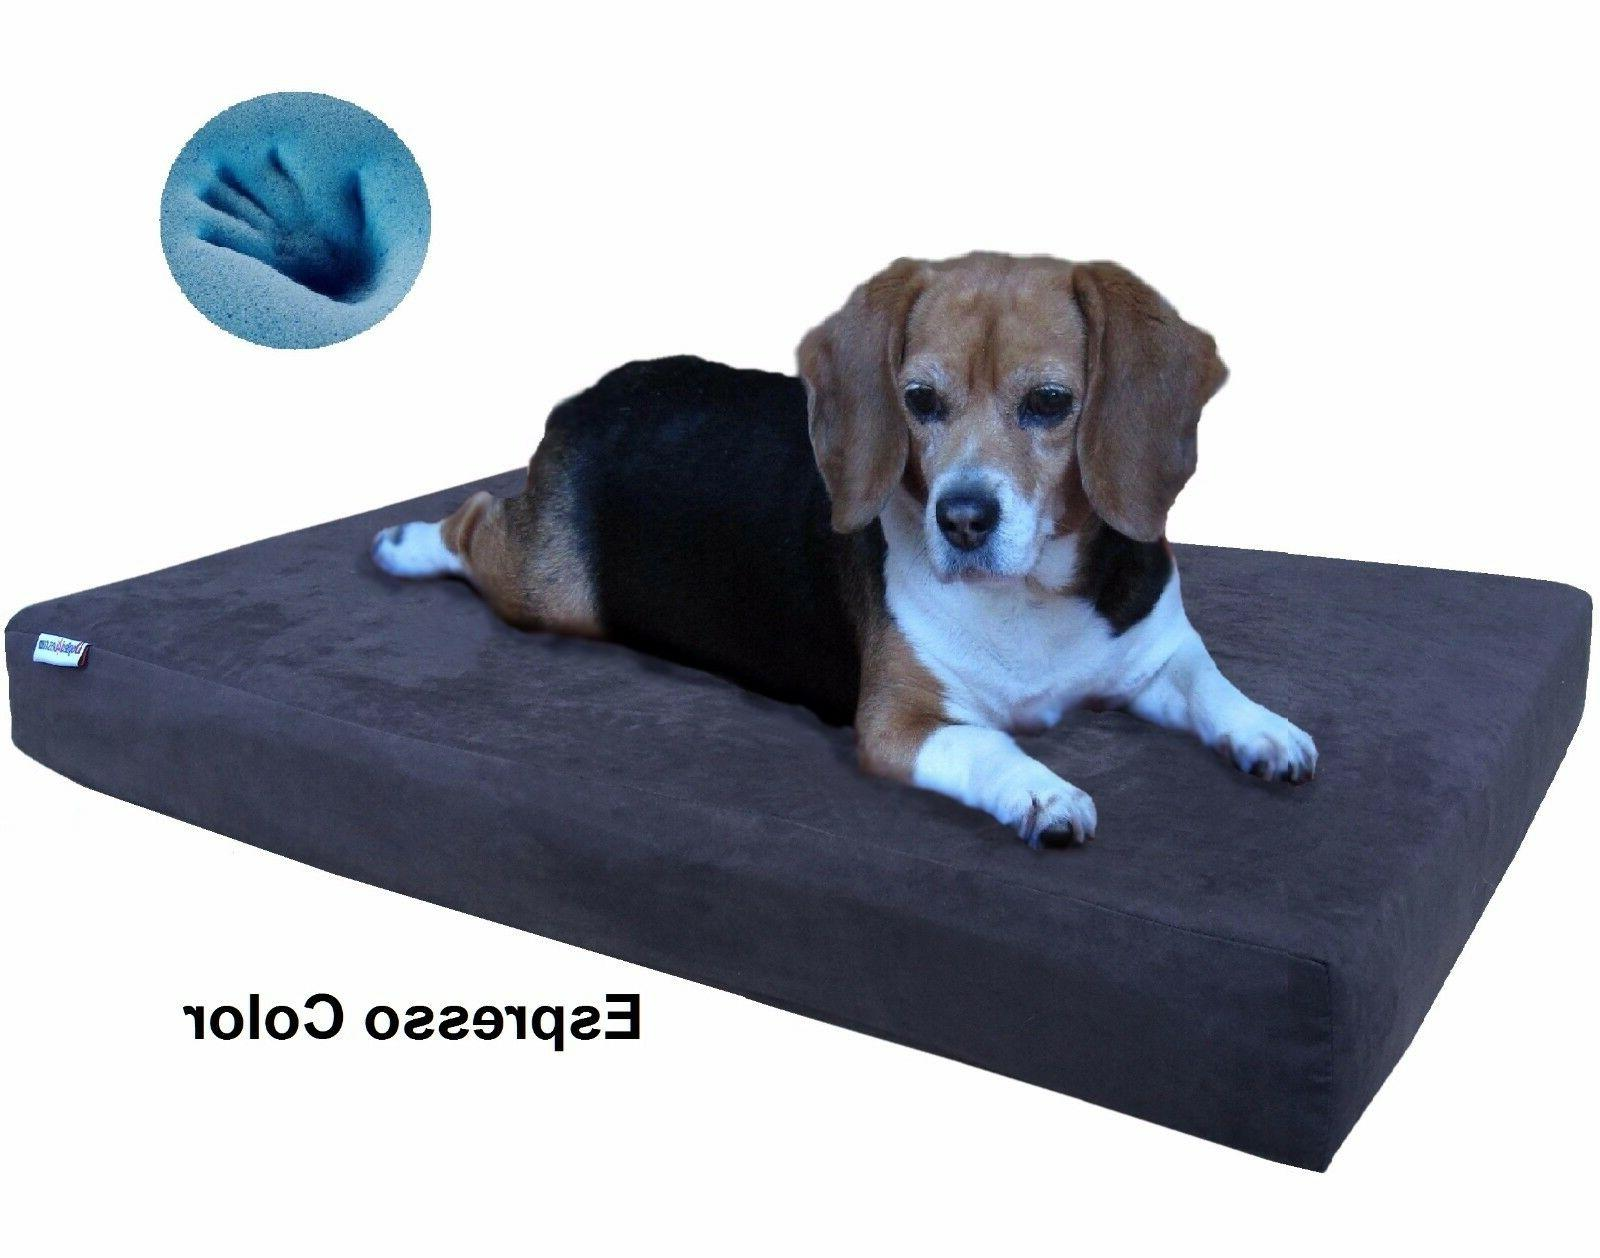 Dogbed4less Foam Pet to Dog Size